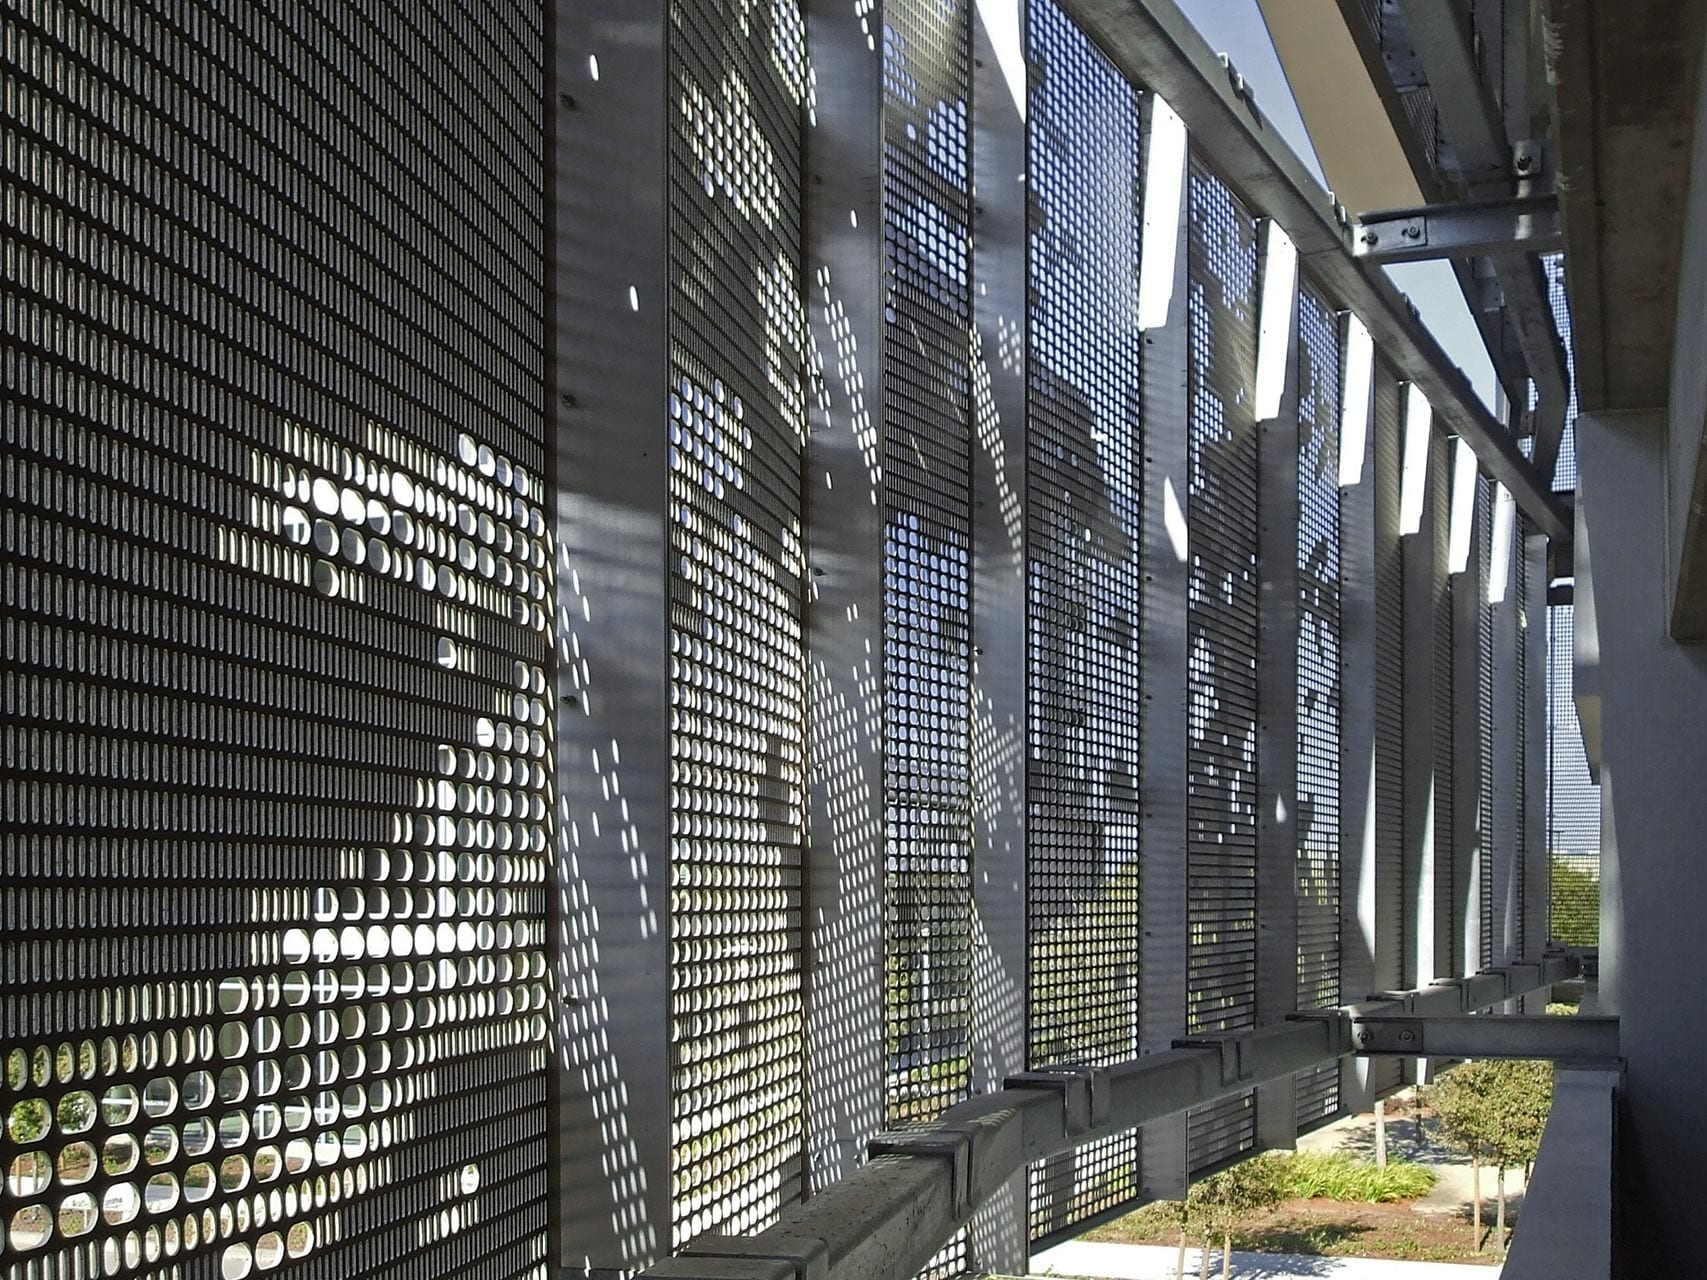 Detail of the undulating facade design by WRNS Studio with custom oval perforation design.